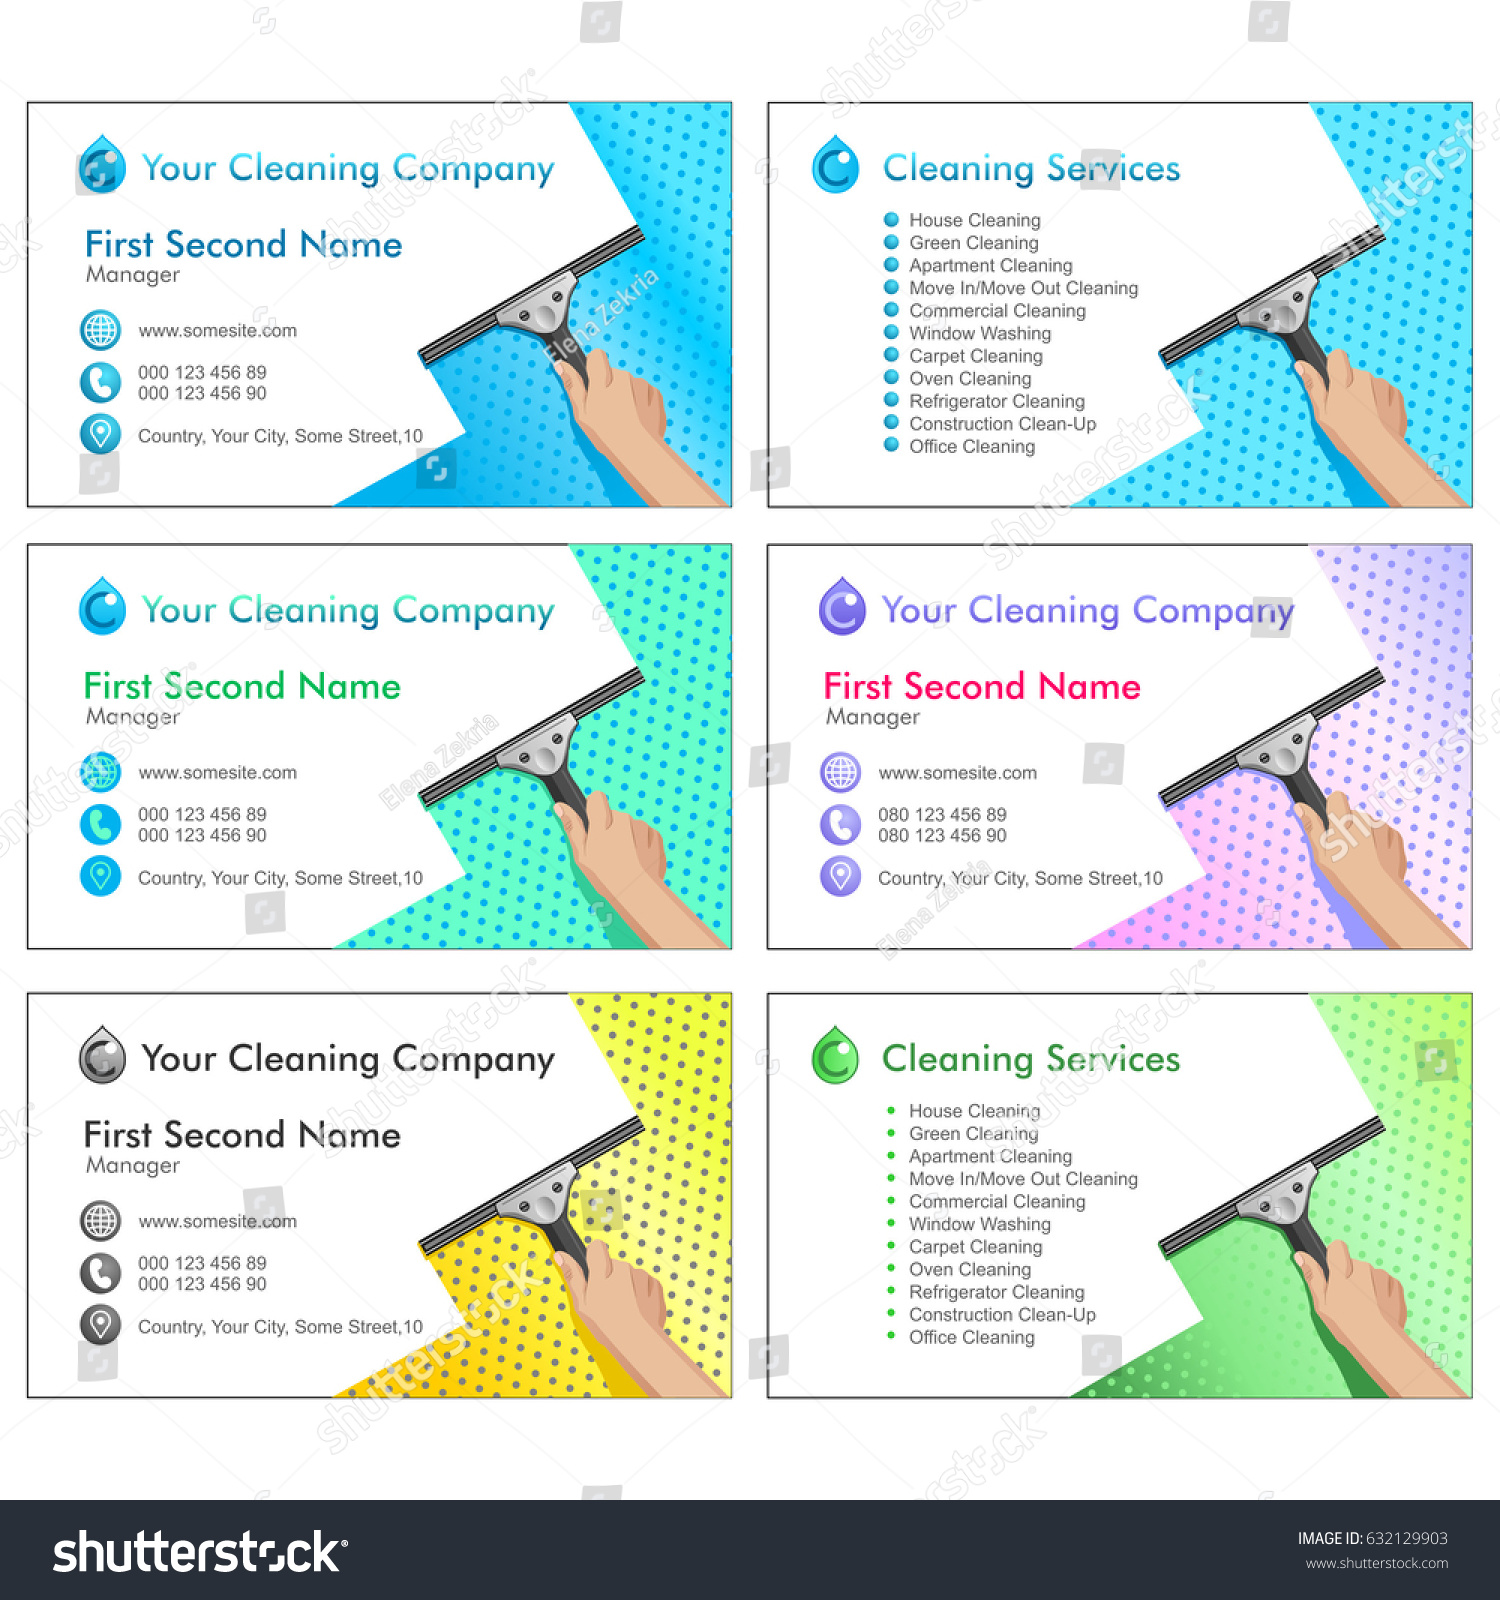 Great Carpet Cleaning Business Cards Photos - Business Card Ideas ...